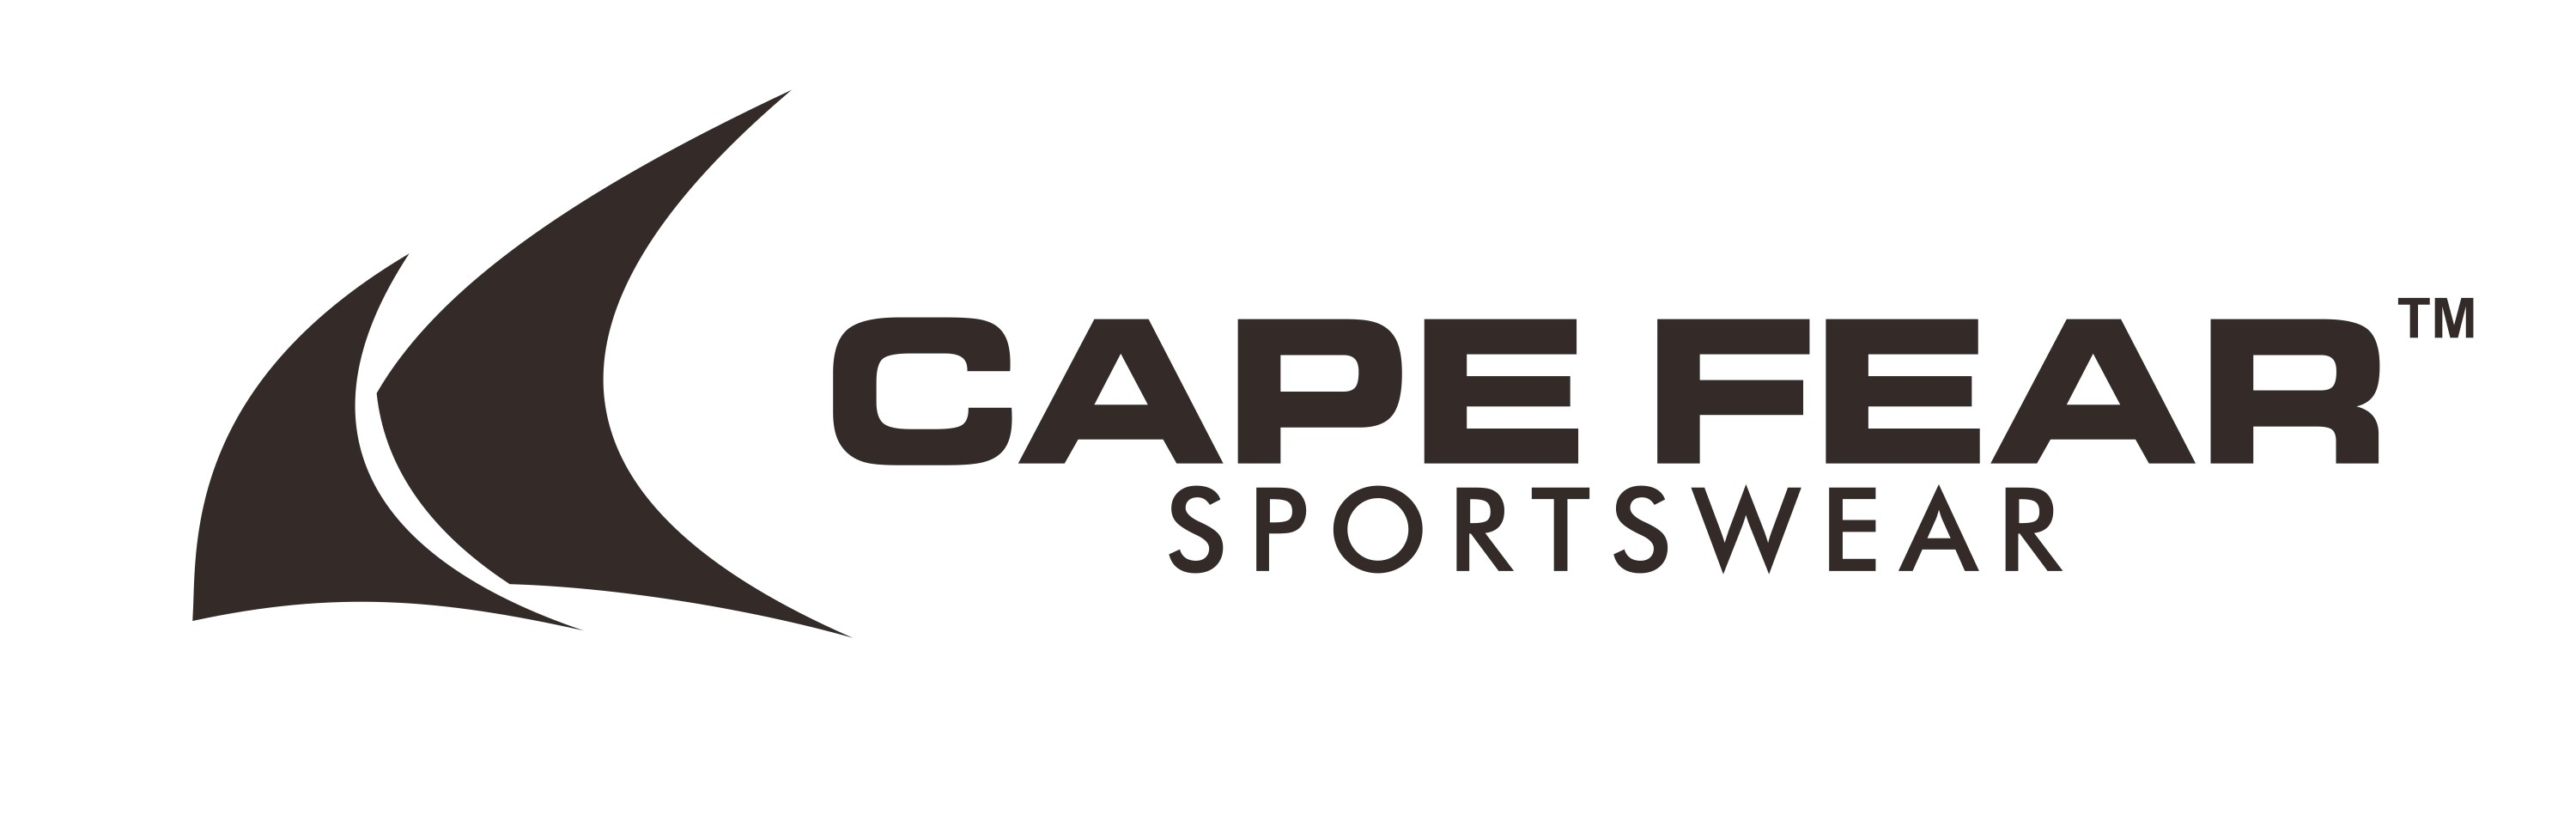 Cape Fear Sportswear